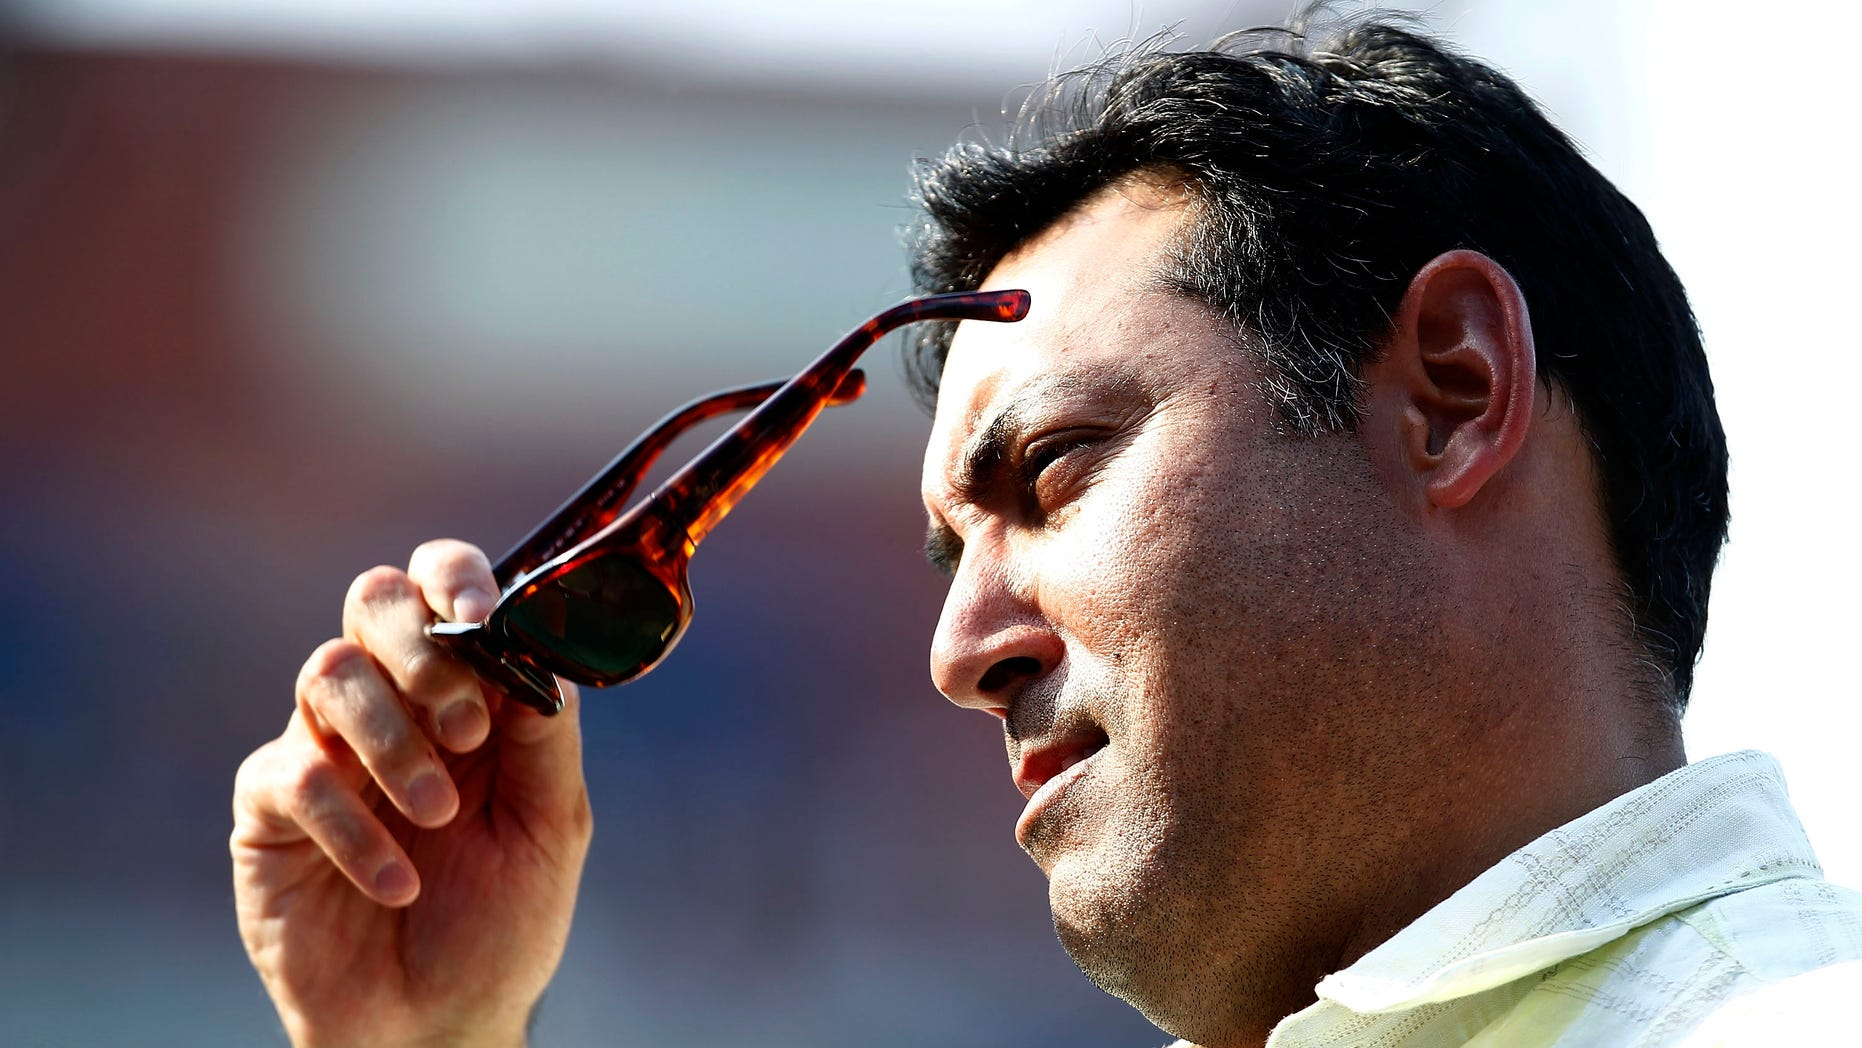 Julty 30:  Ruben Amaro, general manager of the Philadelphia Phillies watches batting practice before a game against the Pittsburgh Pirates at Citizens Bank Park. (Photo by Jeff Zelevansky/Getty Images)